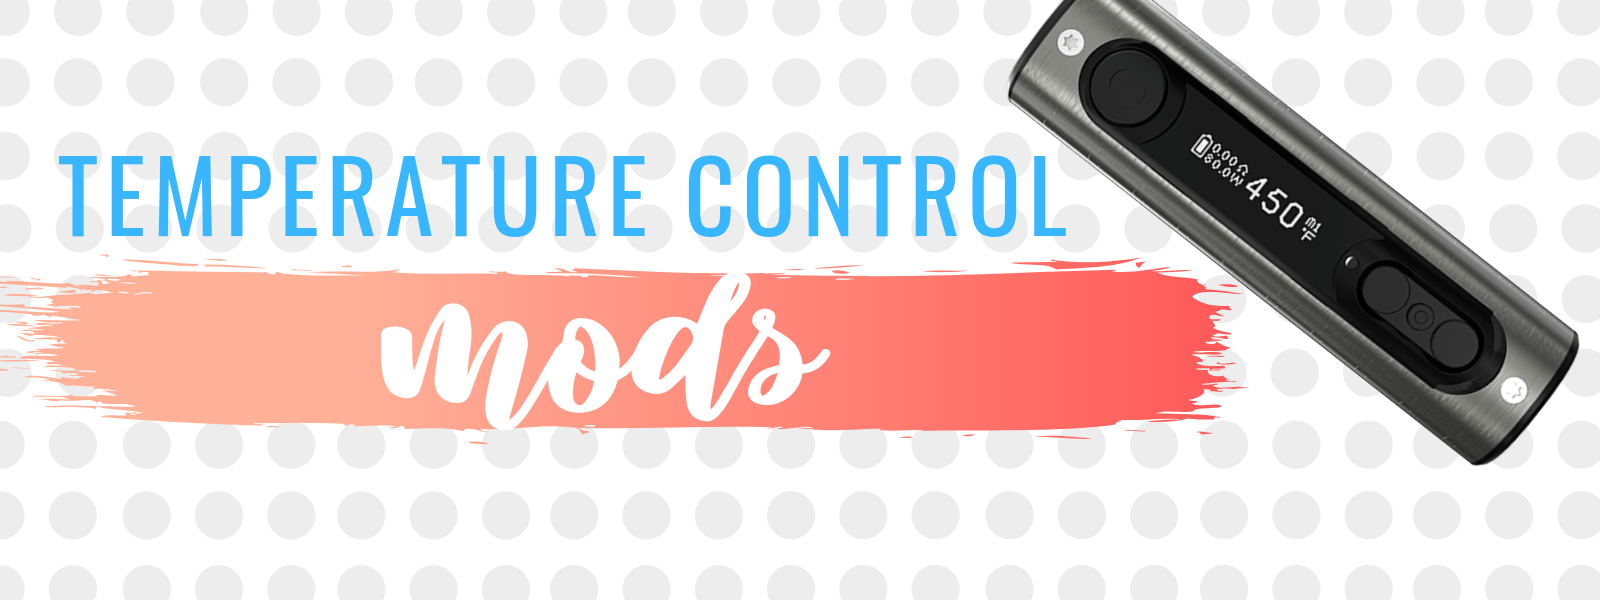 Temperature Control Mods